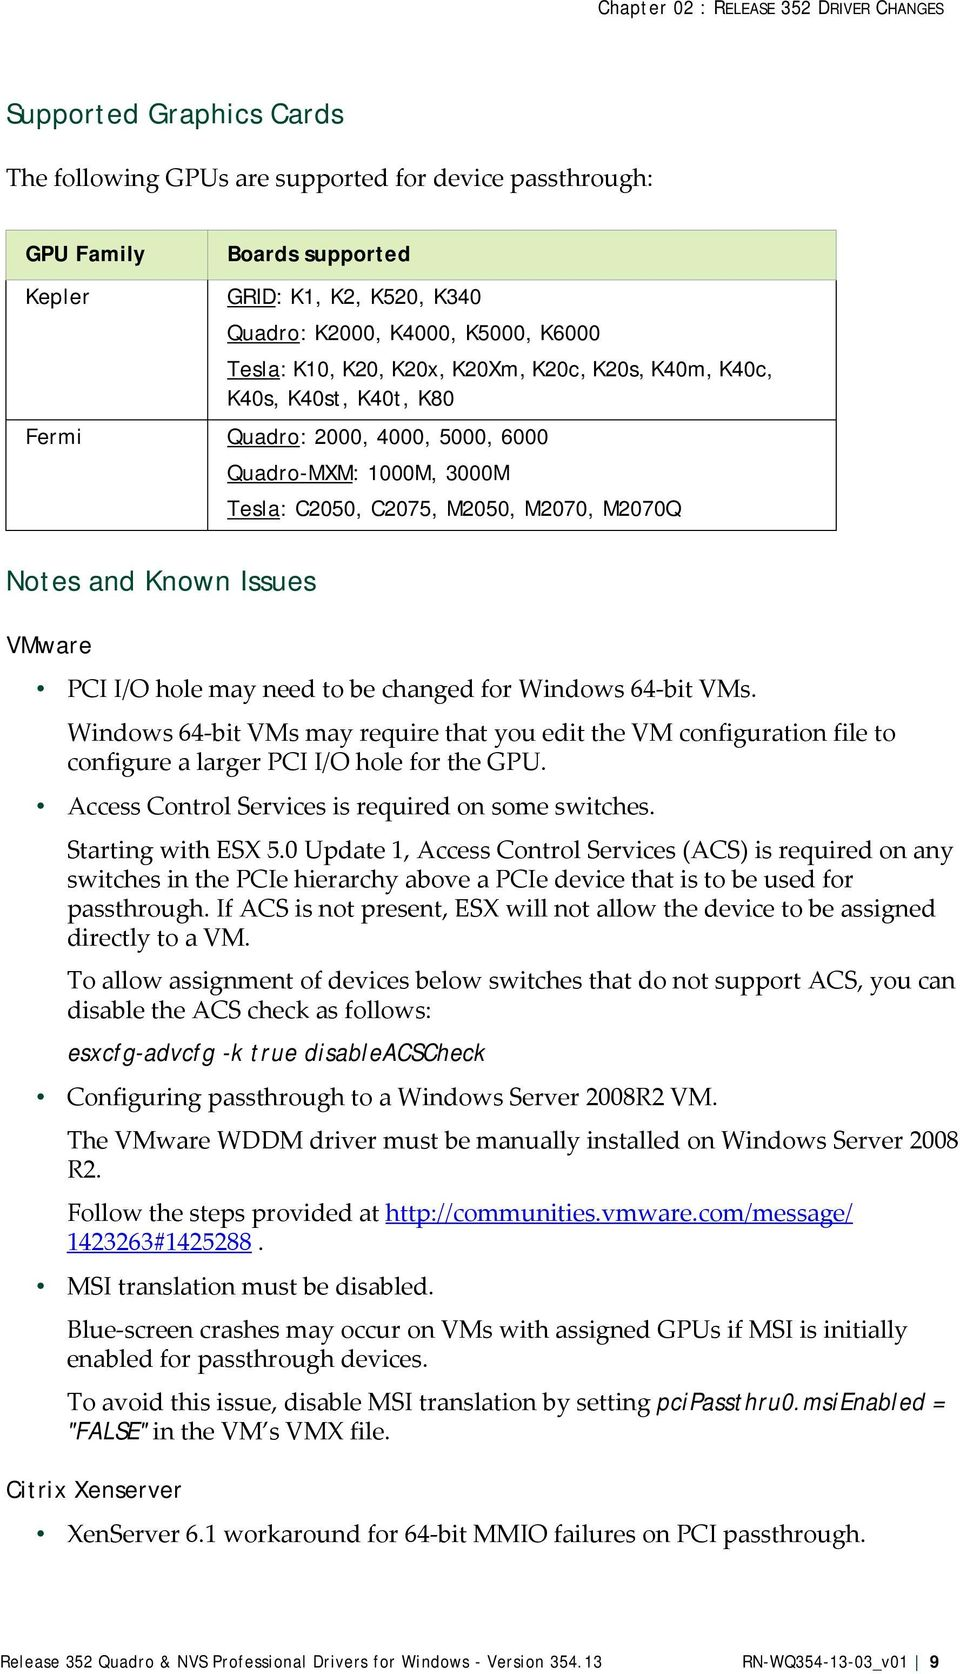 Release 352 Quadro & NVS Professional Drivers for Windows - Version